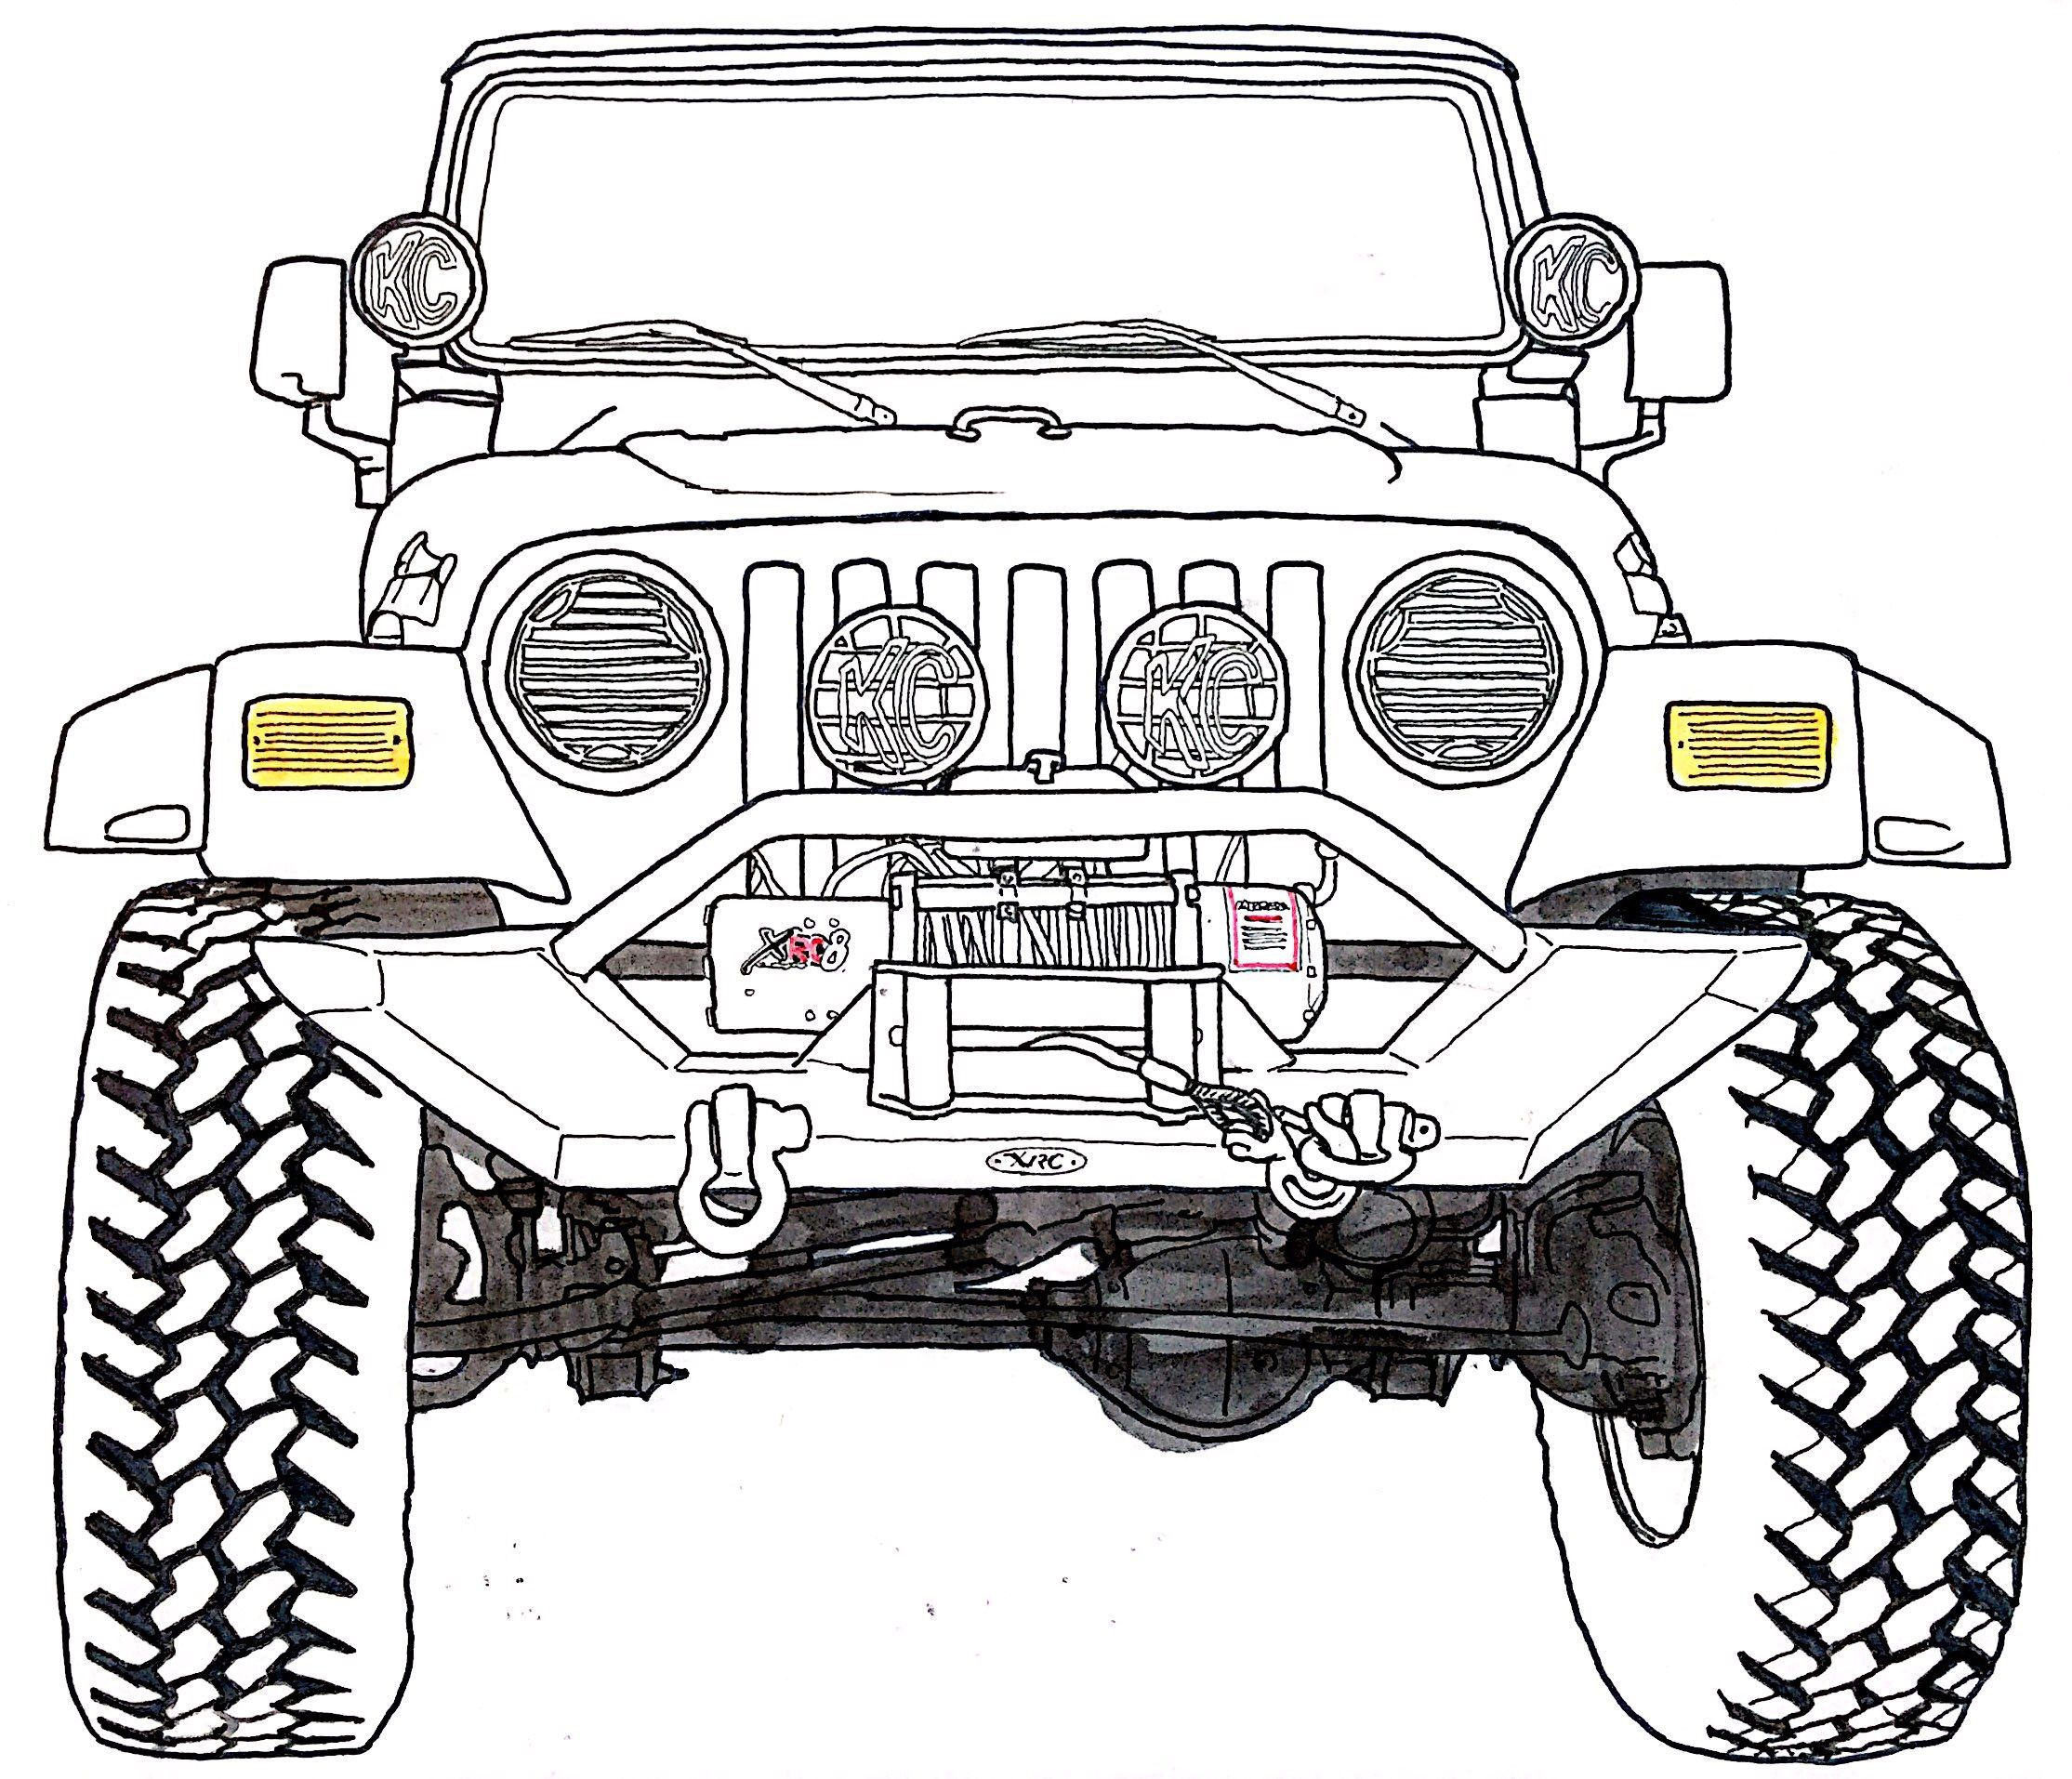 drag to resize or shift+drag to move | Jeep | Pinterest | Lagartos ...